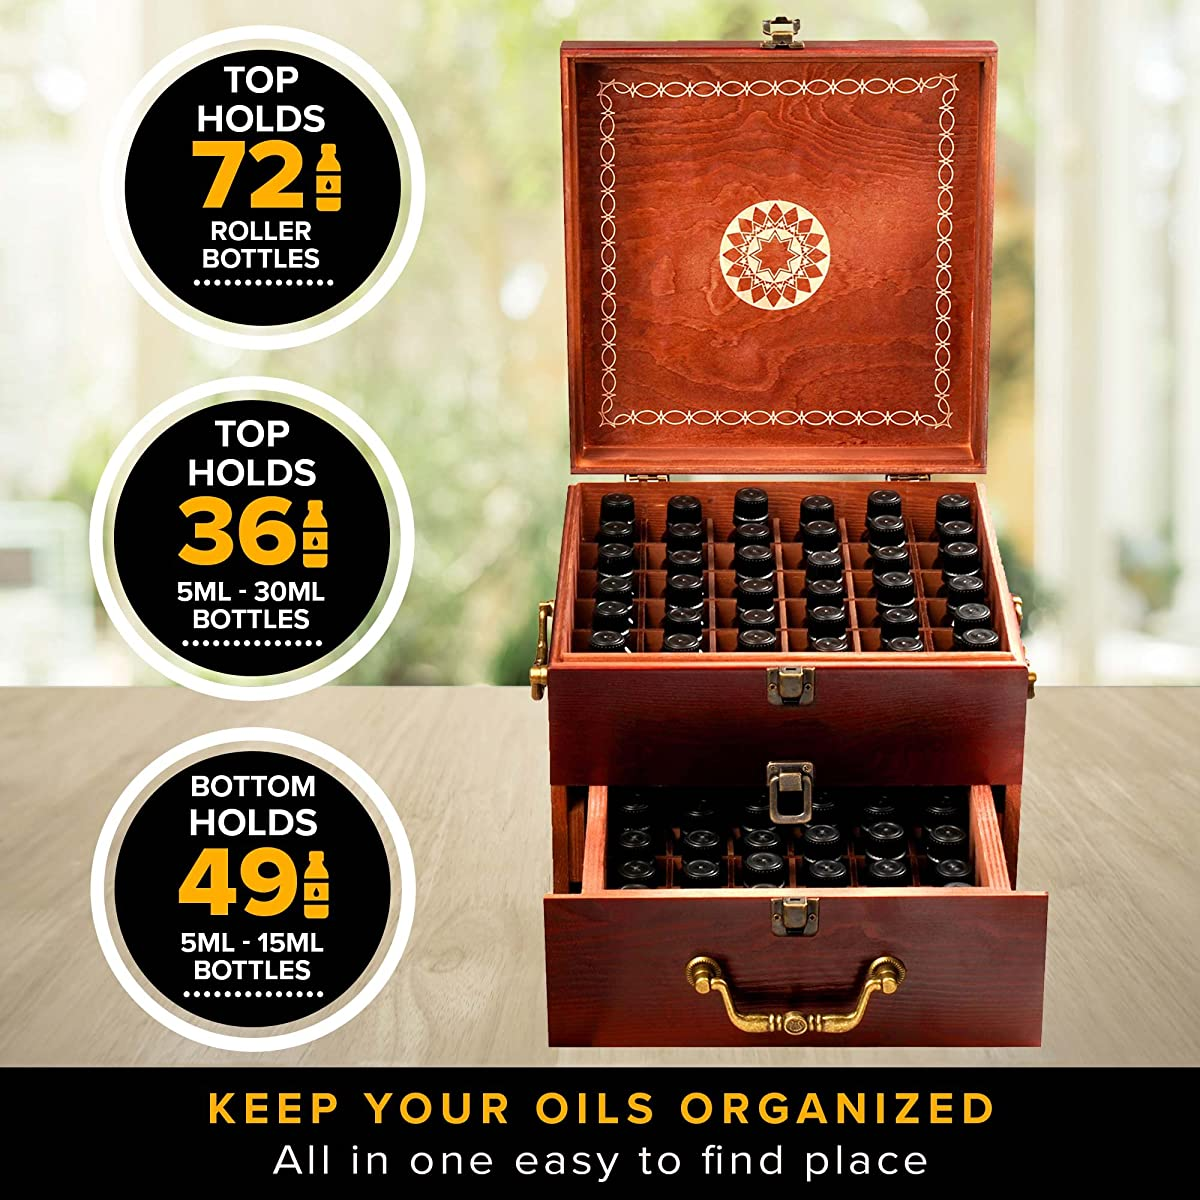 Beautiful 2 Tier Essential Oil Storage Box Organizer with 2 Carry Handles Holds 85 5-30ml & 10ml Roller Bottles (Space for 2oz 4oz Bottles) - Free Bottle Opener & 192 Essential Oil Labels